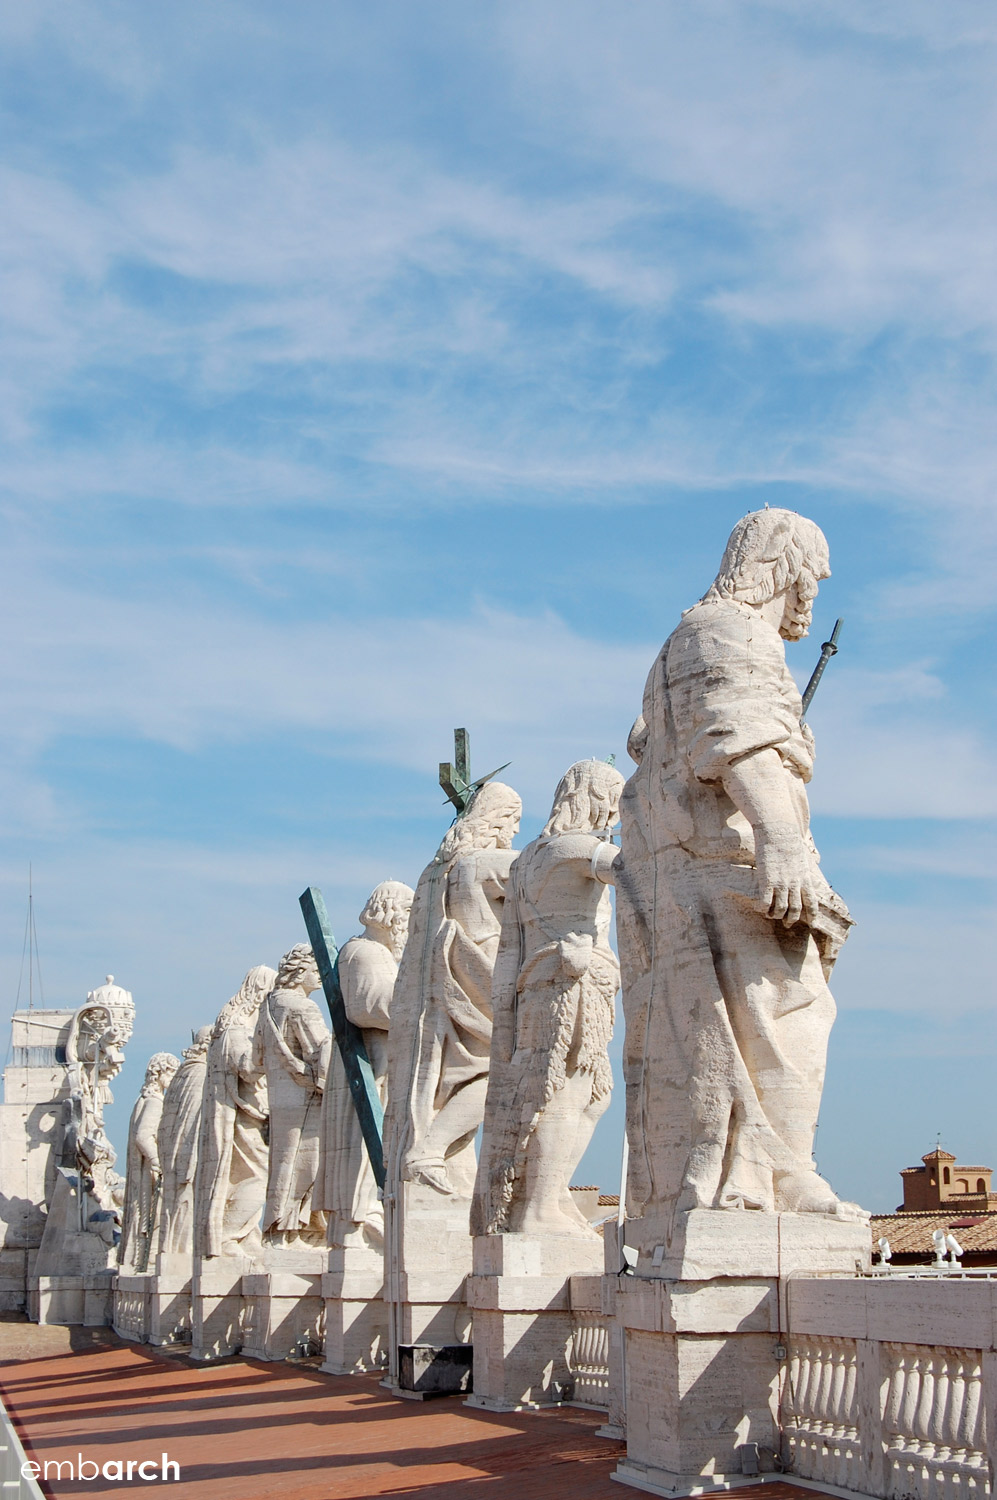 St. Peter's Basilica - statuary on roof